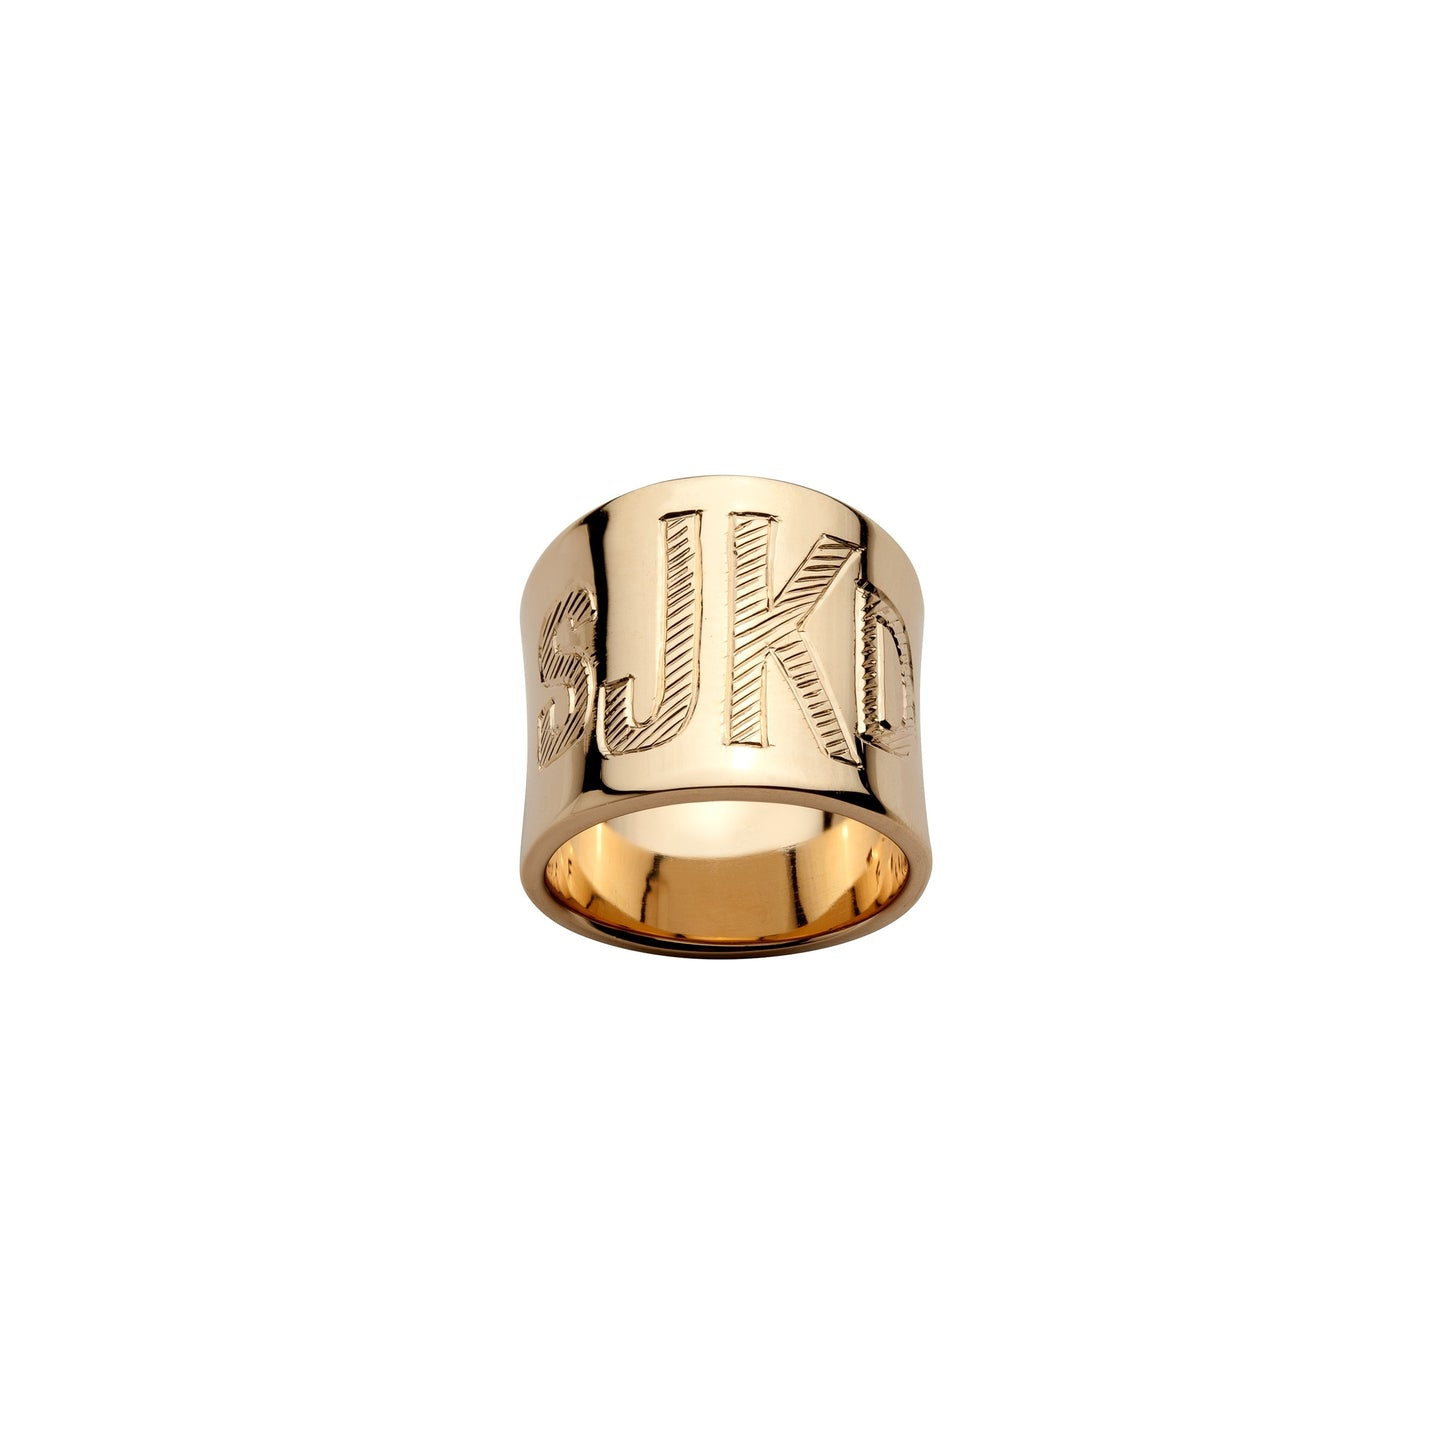 Cigar Band with Hand Engraved Monogram